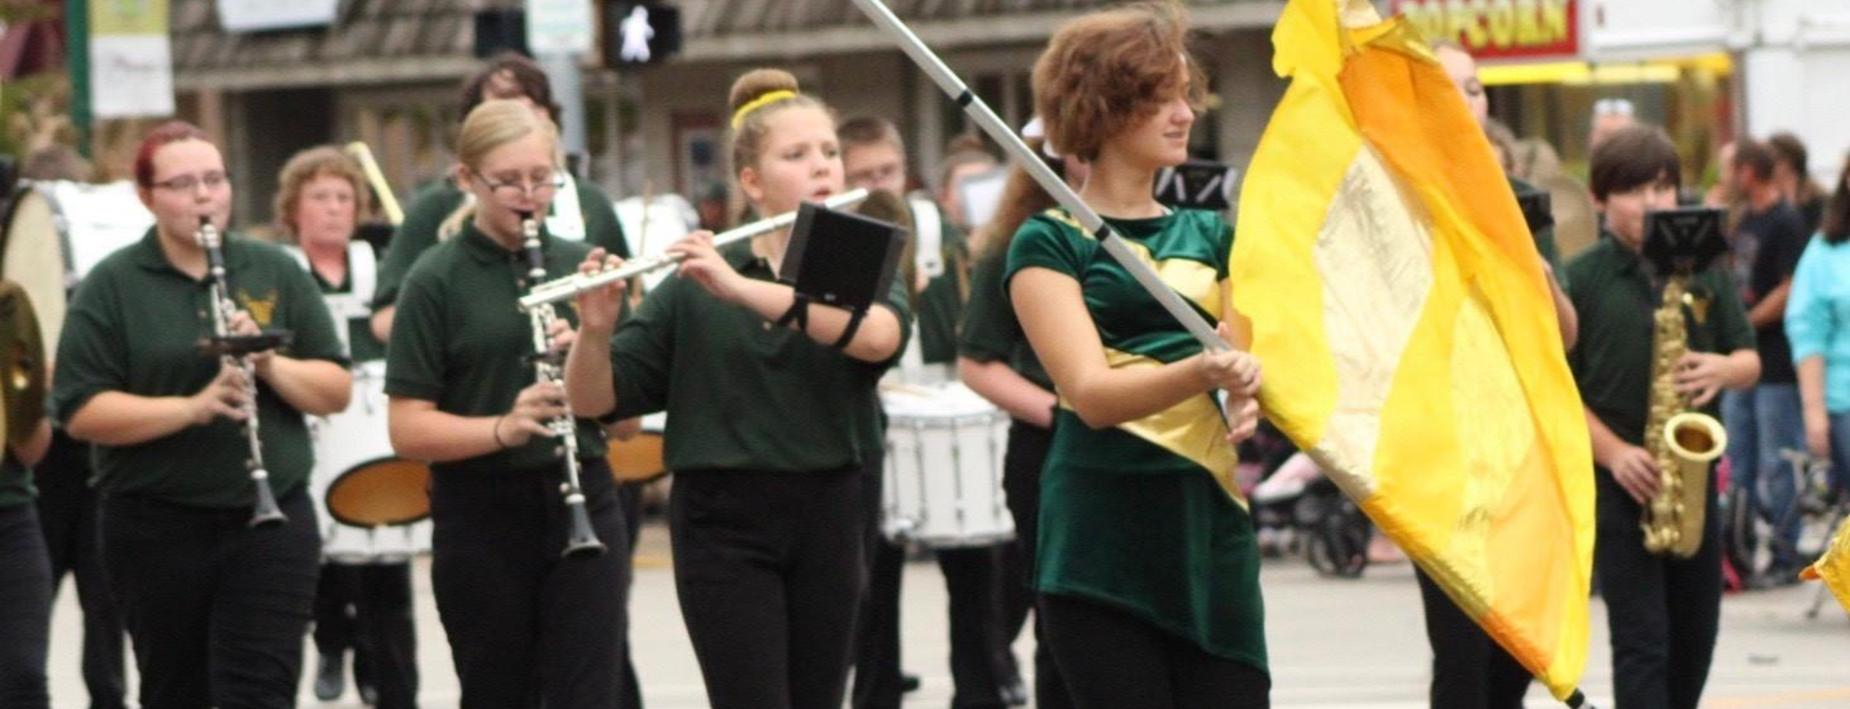 CCMS Band in Cornfest parade